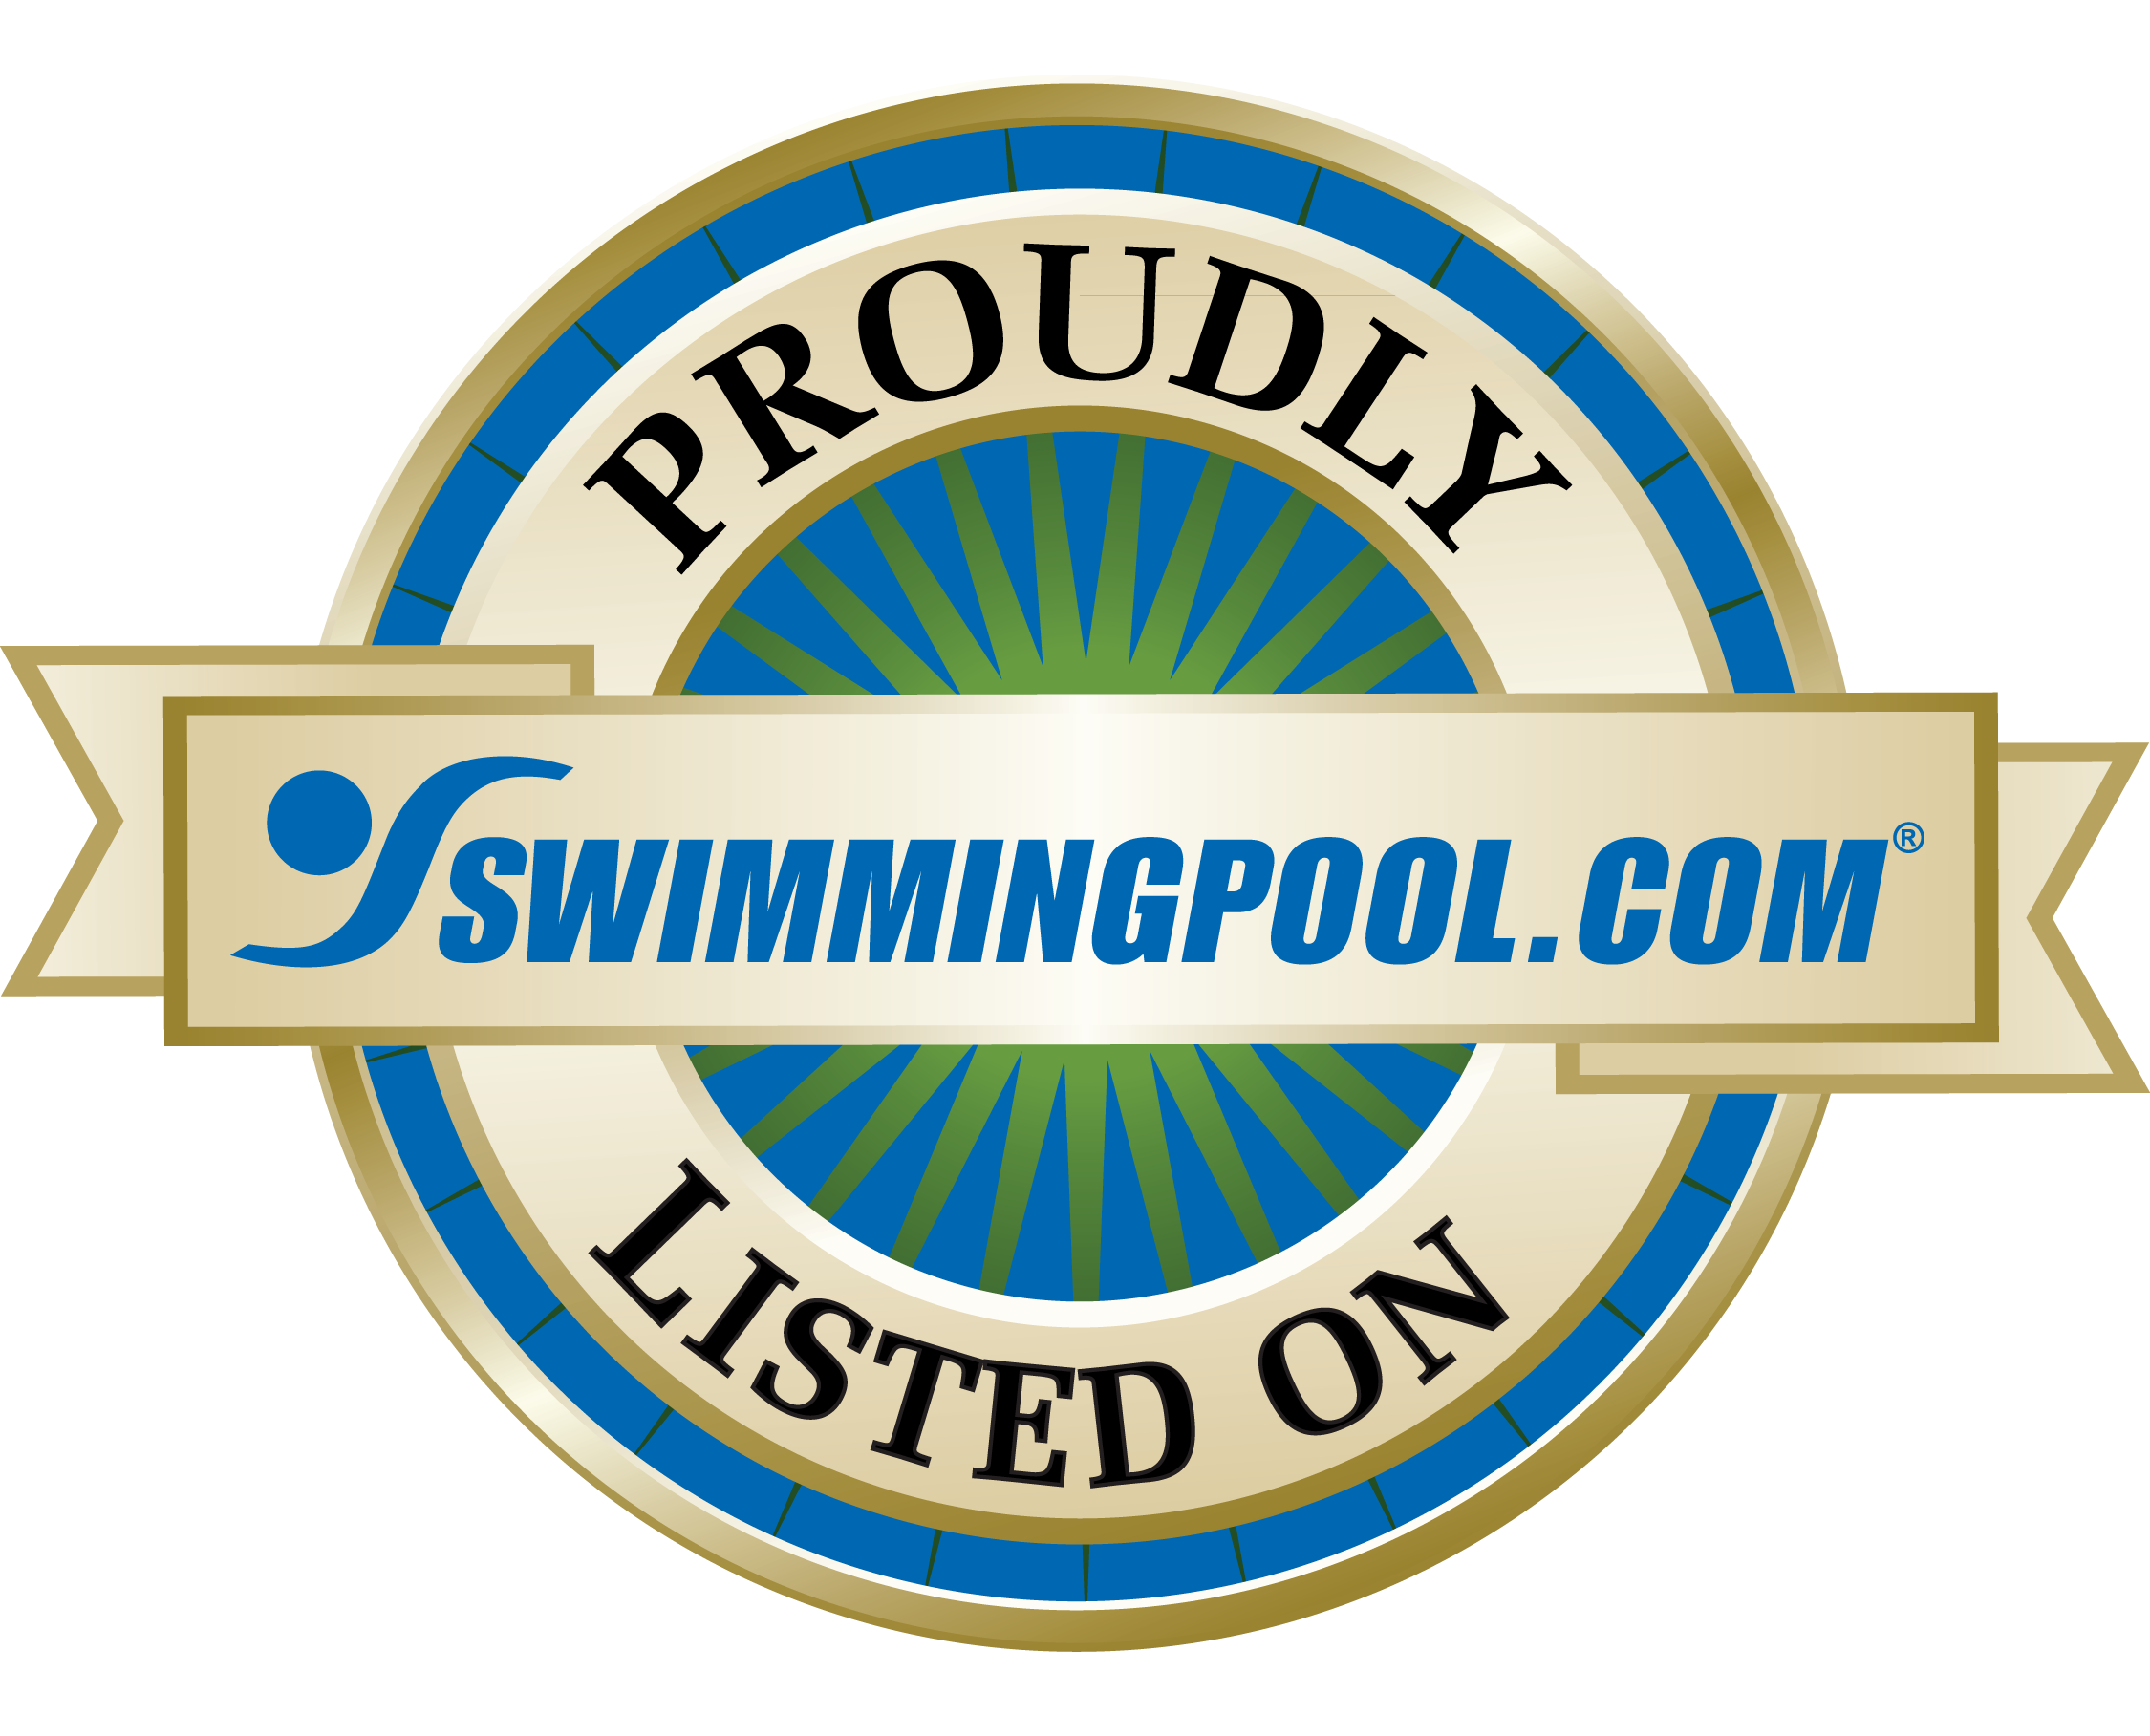 Pool Cleaning Logos : Swimming pool cleaning symbols